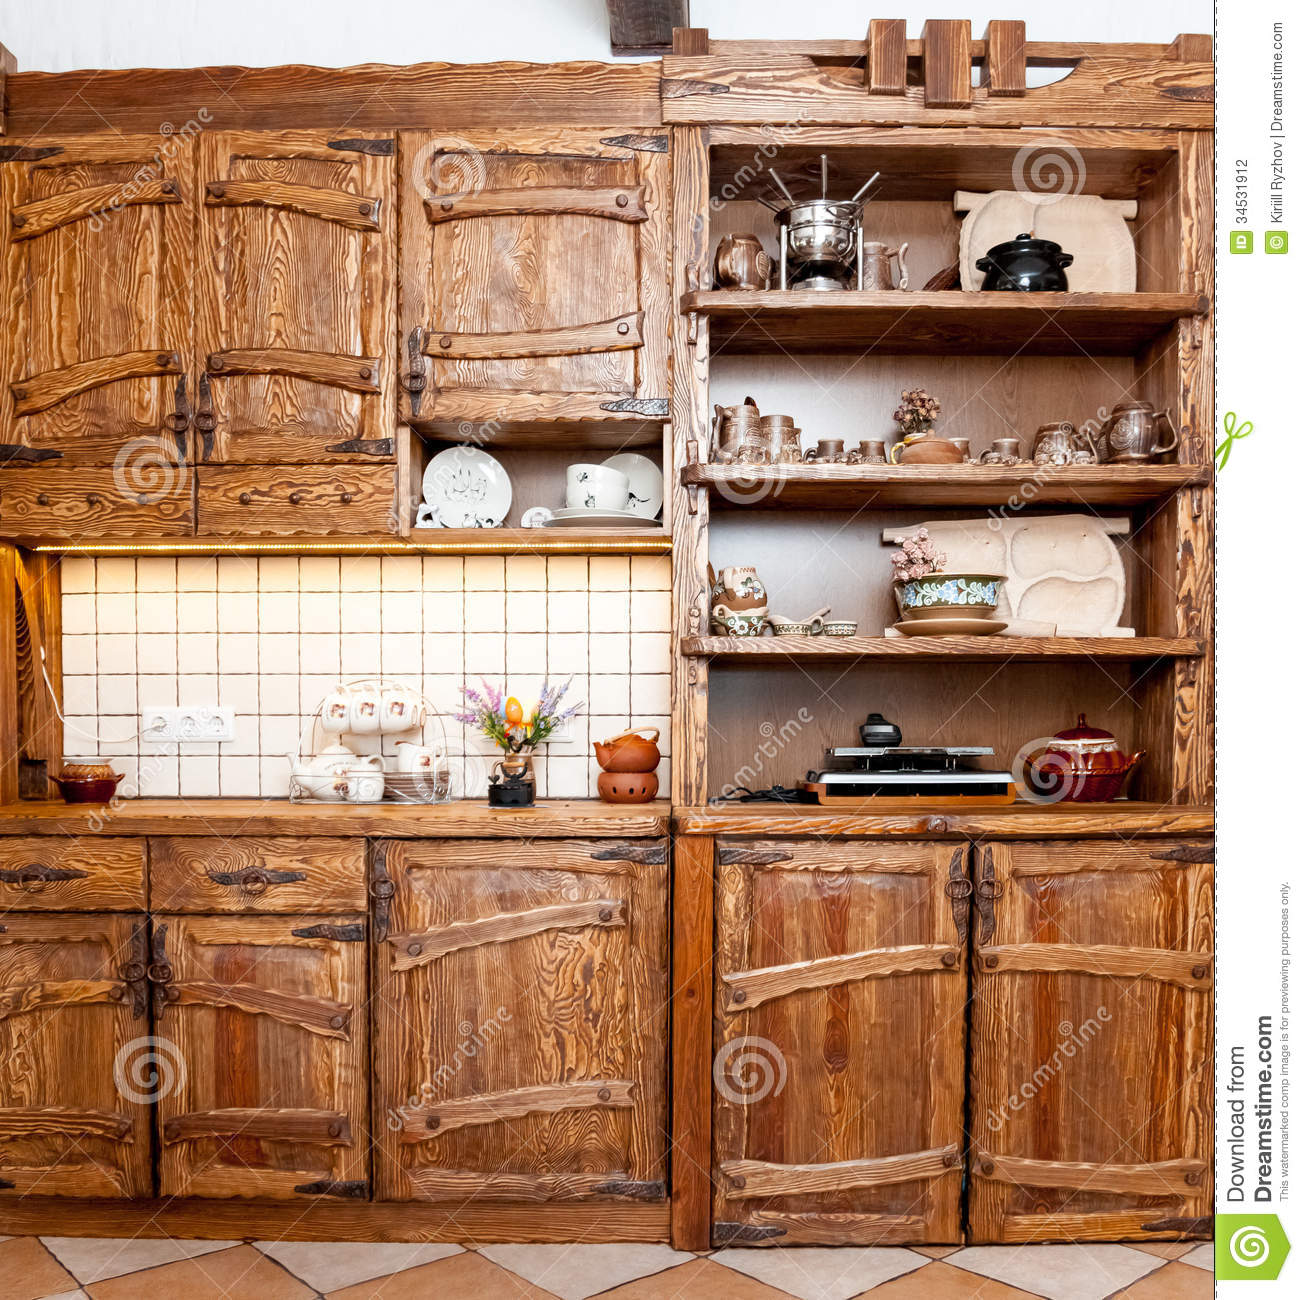 furniture kitchen country style stock photography image modern wooden kitchen furniture